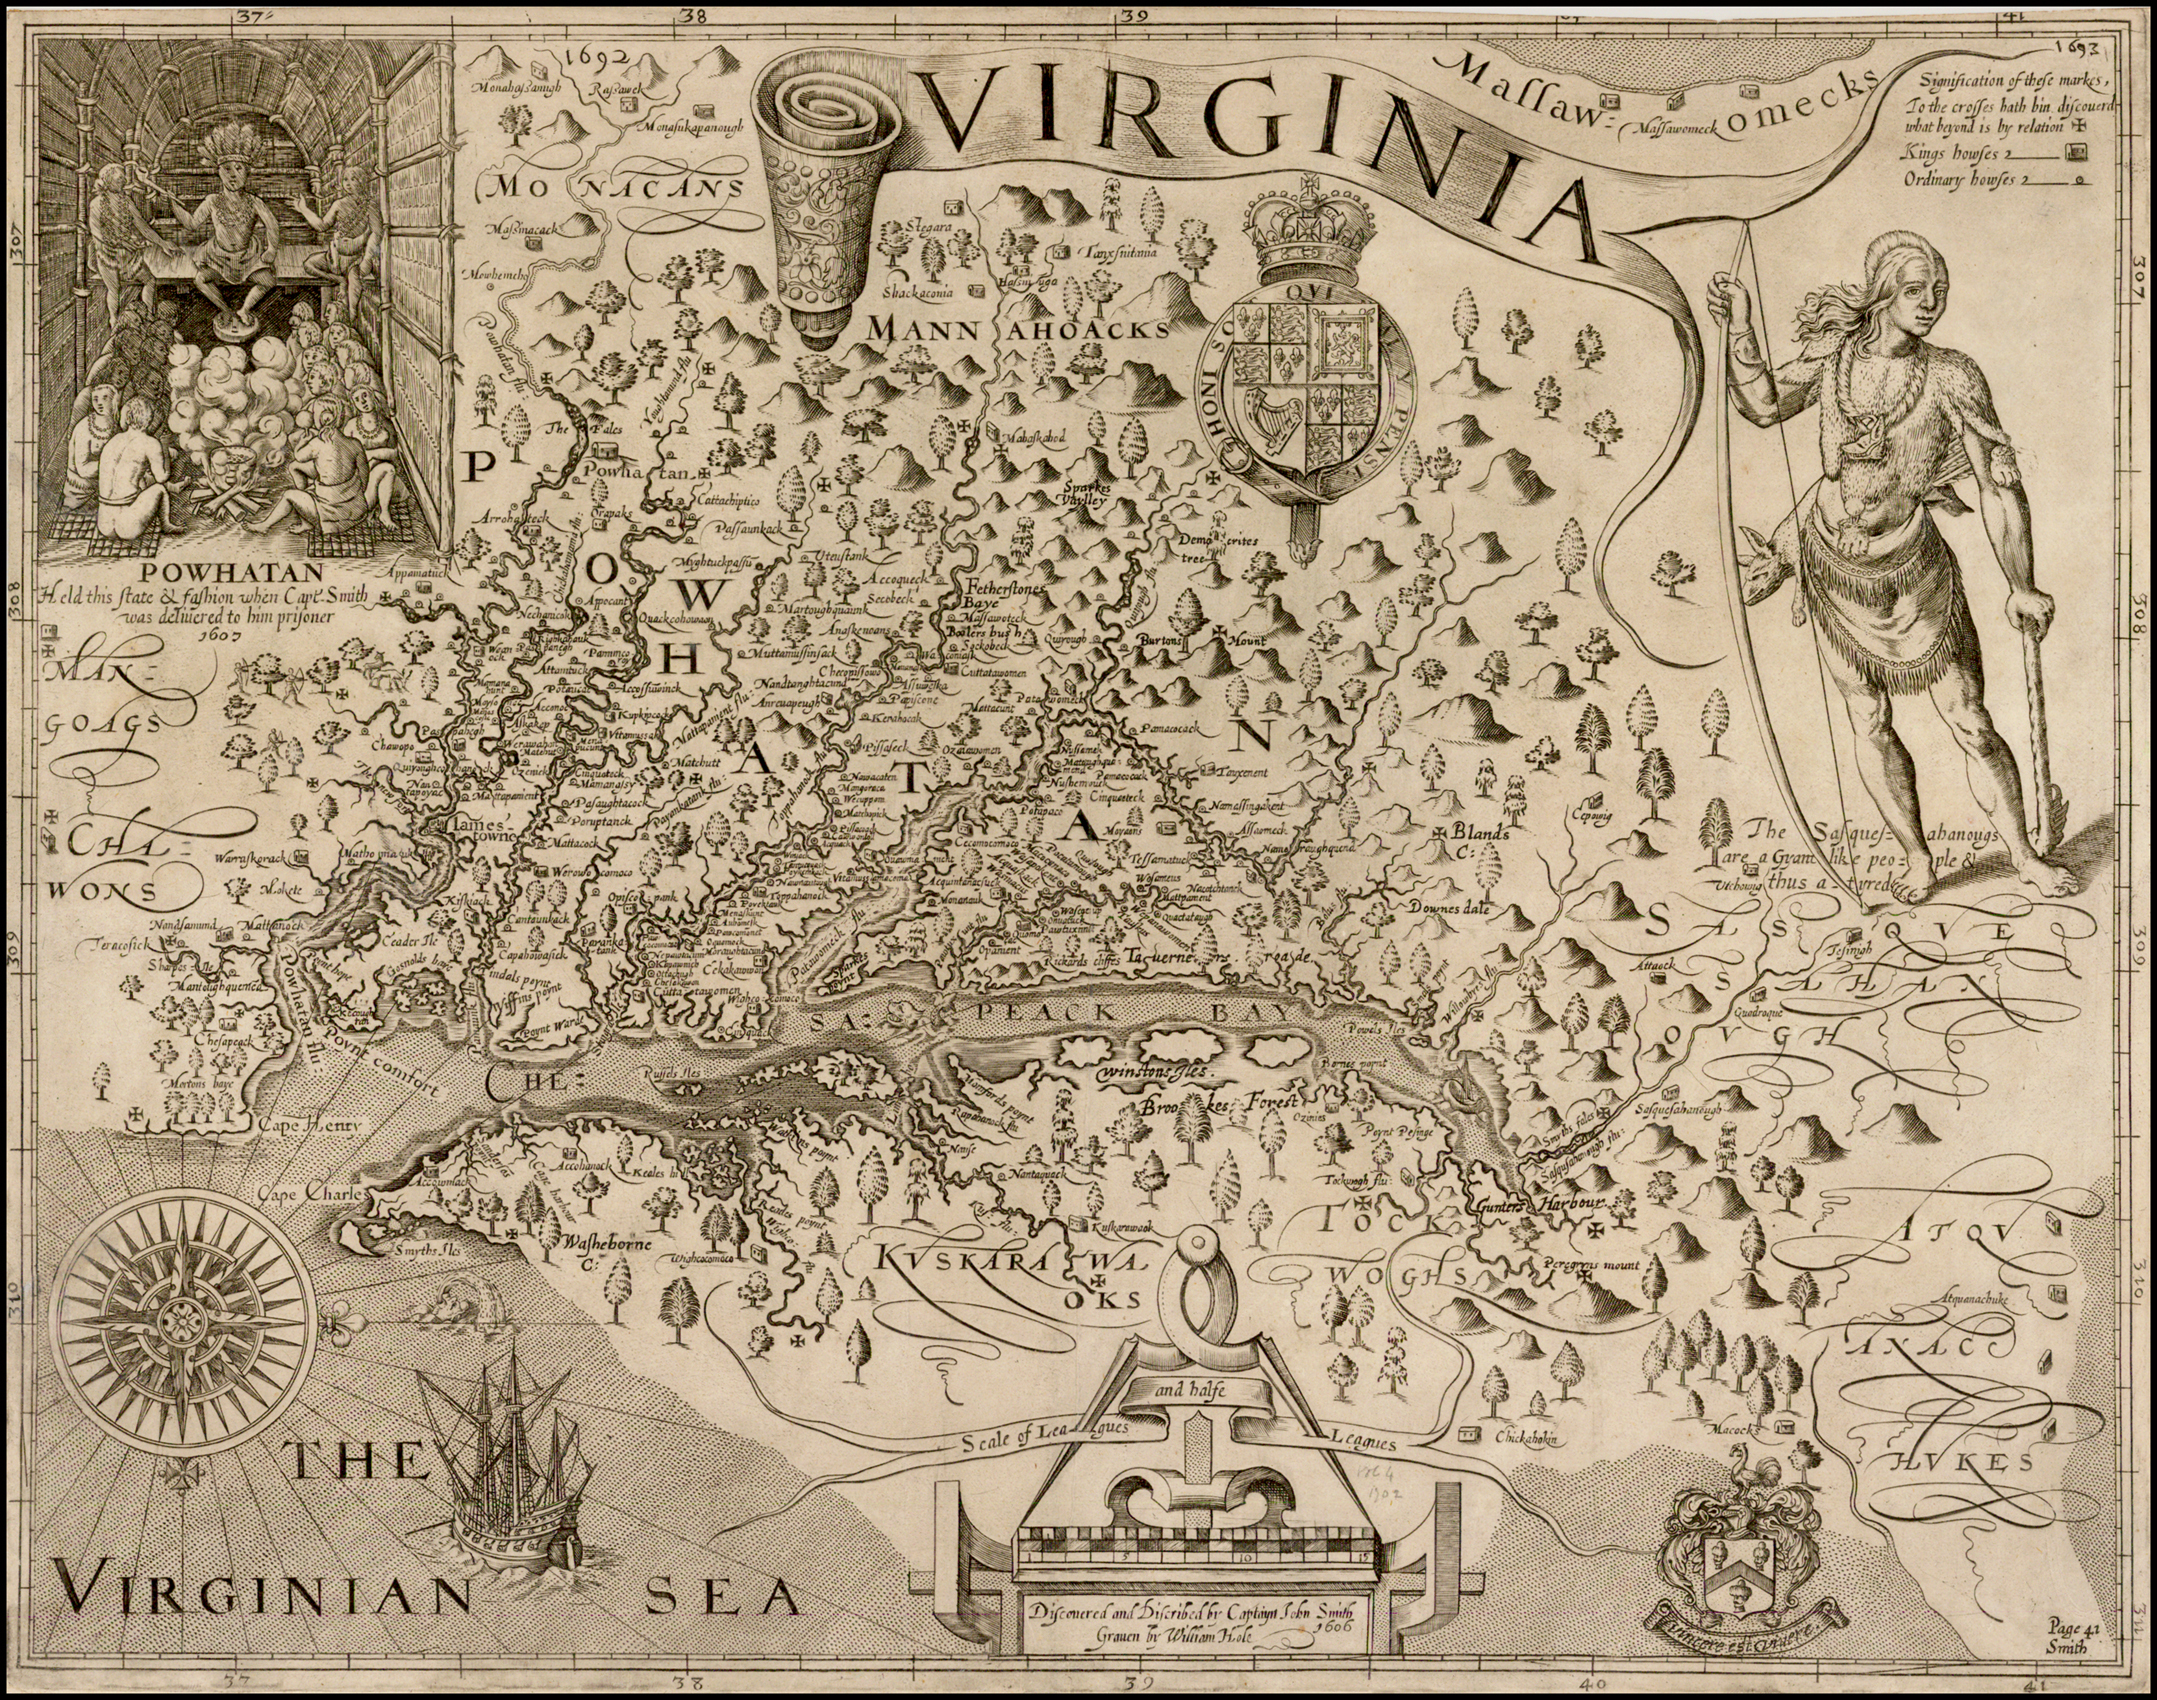 Virginia. Discovered and Discribed by Captain John Smith ... on jamestown kentucky map, roanoke settlement map, jamestown success, jamestown vs. plymouth, jamestown voyage map, jamestown geographic map, jamestown virginia colonies map, jamestown virginia america map, jamestown virginia map printable, roanoke and jamestown colonies map, jamestown on map, jamestown island map, old jamestown map, old virginia colony map, jamestown tour, jamestown colony, jamestown maps in the 1600, jamestown settled, williamsburg virginia map, 1610 jamestown virginia map,